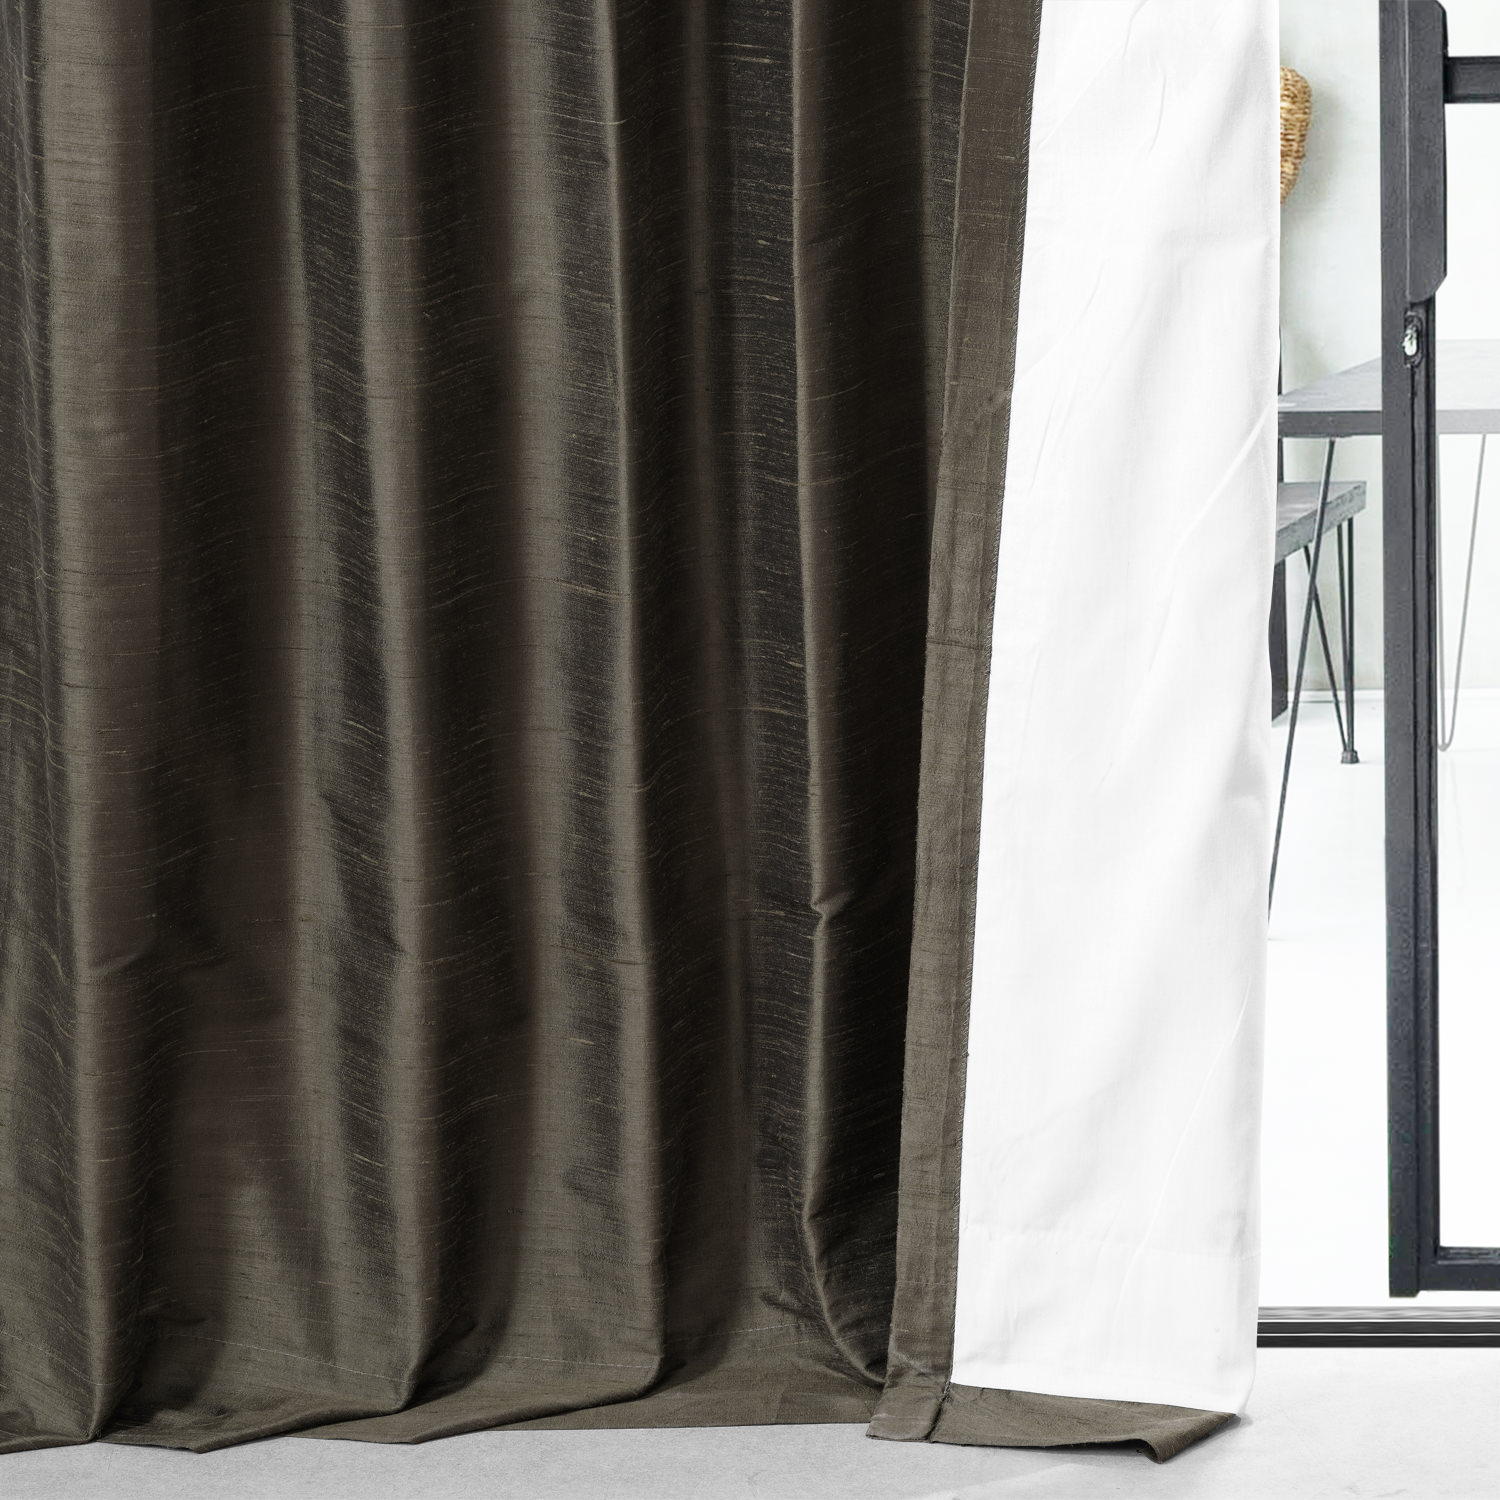 Midnight Pine Textured Dupioni Silk Curtain